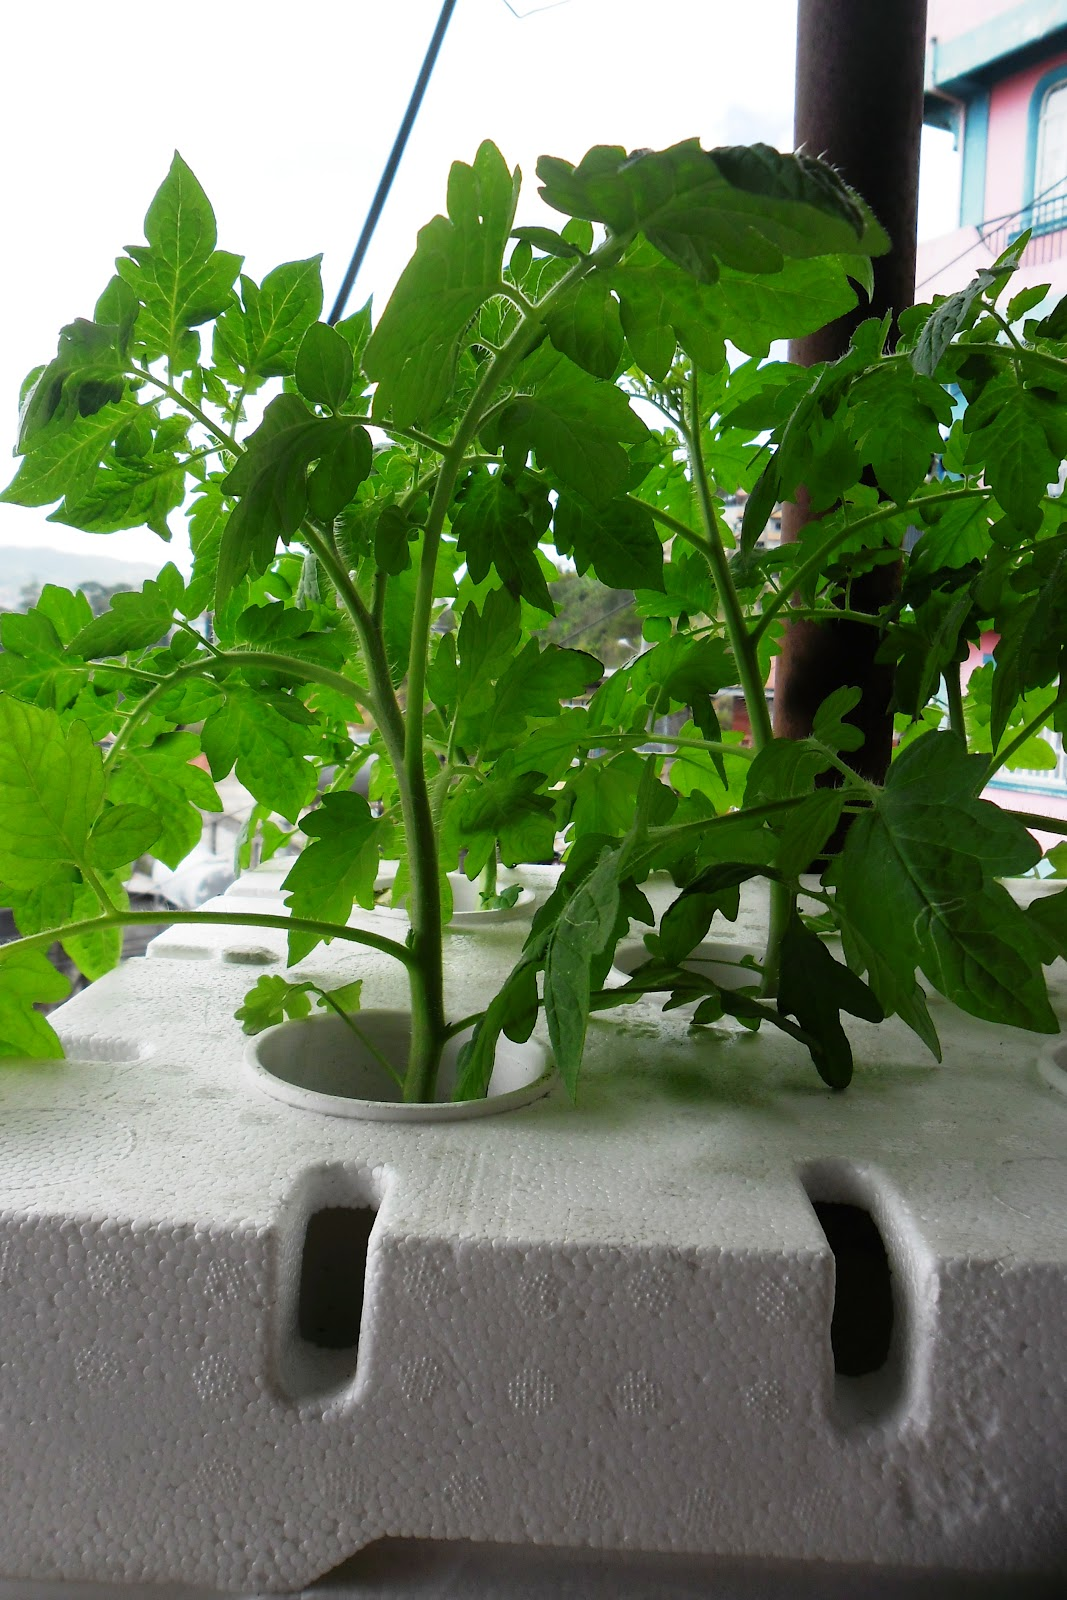 how to grow hydroponic tomatoes at home